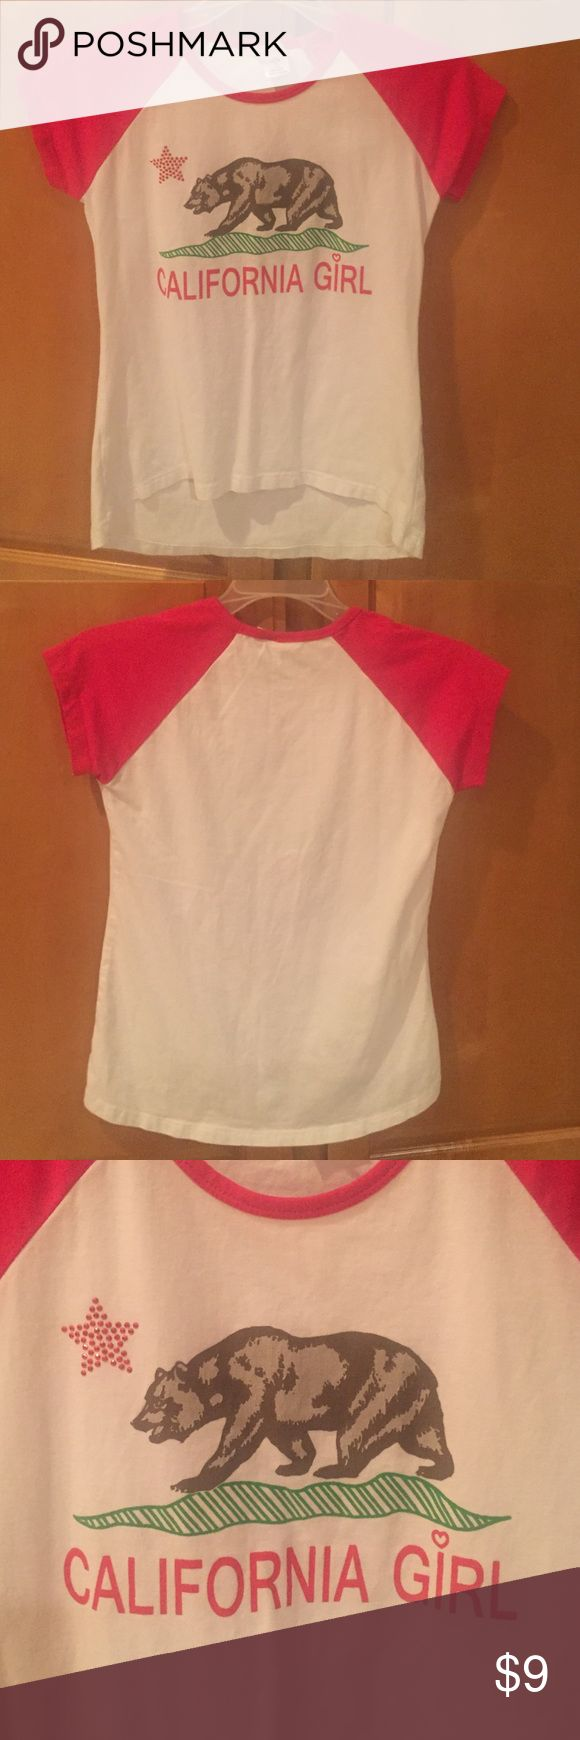 Girls T-shirt Girls t-shirt in white with pink sleeves. Has an embellished star. Has a small red line above bear. Size L 14/16 Shirts & Tops Tees - Short Sleeve